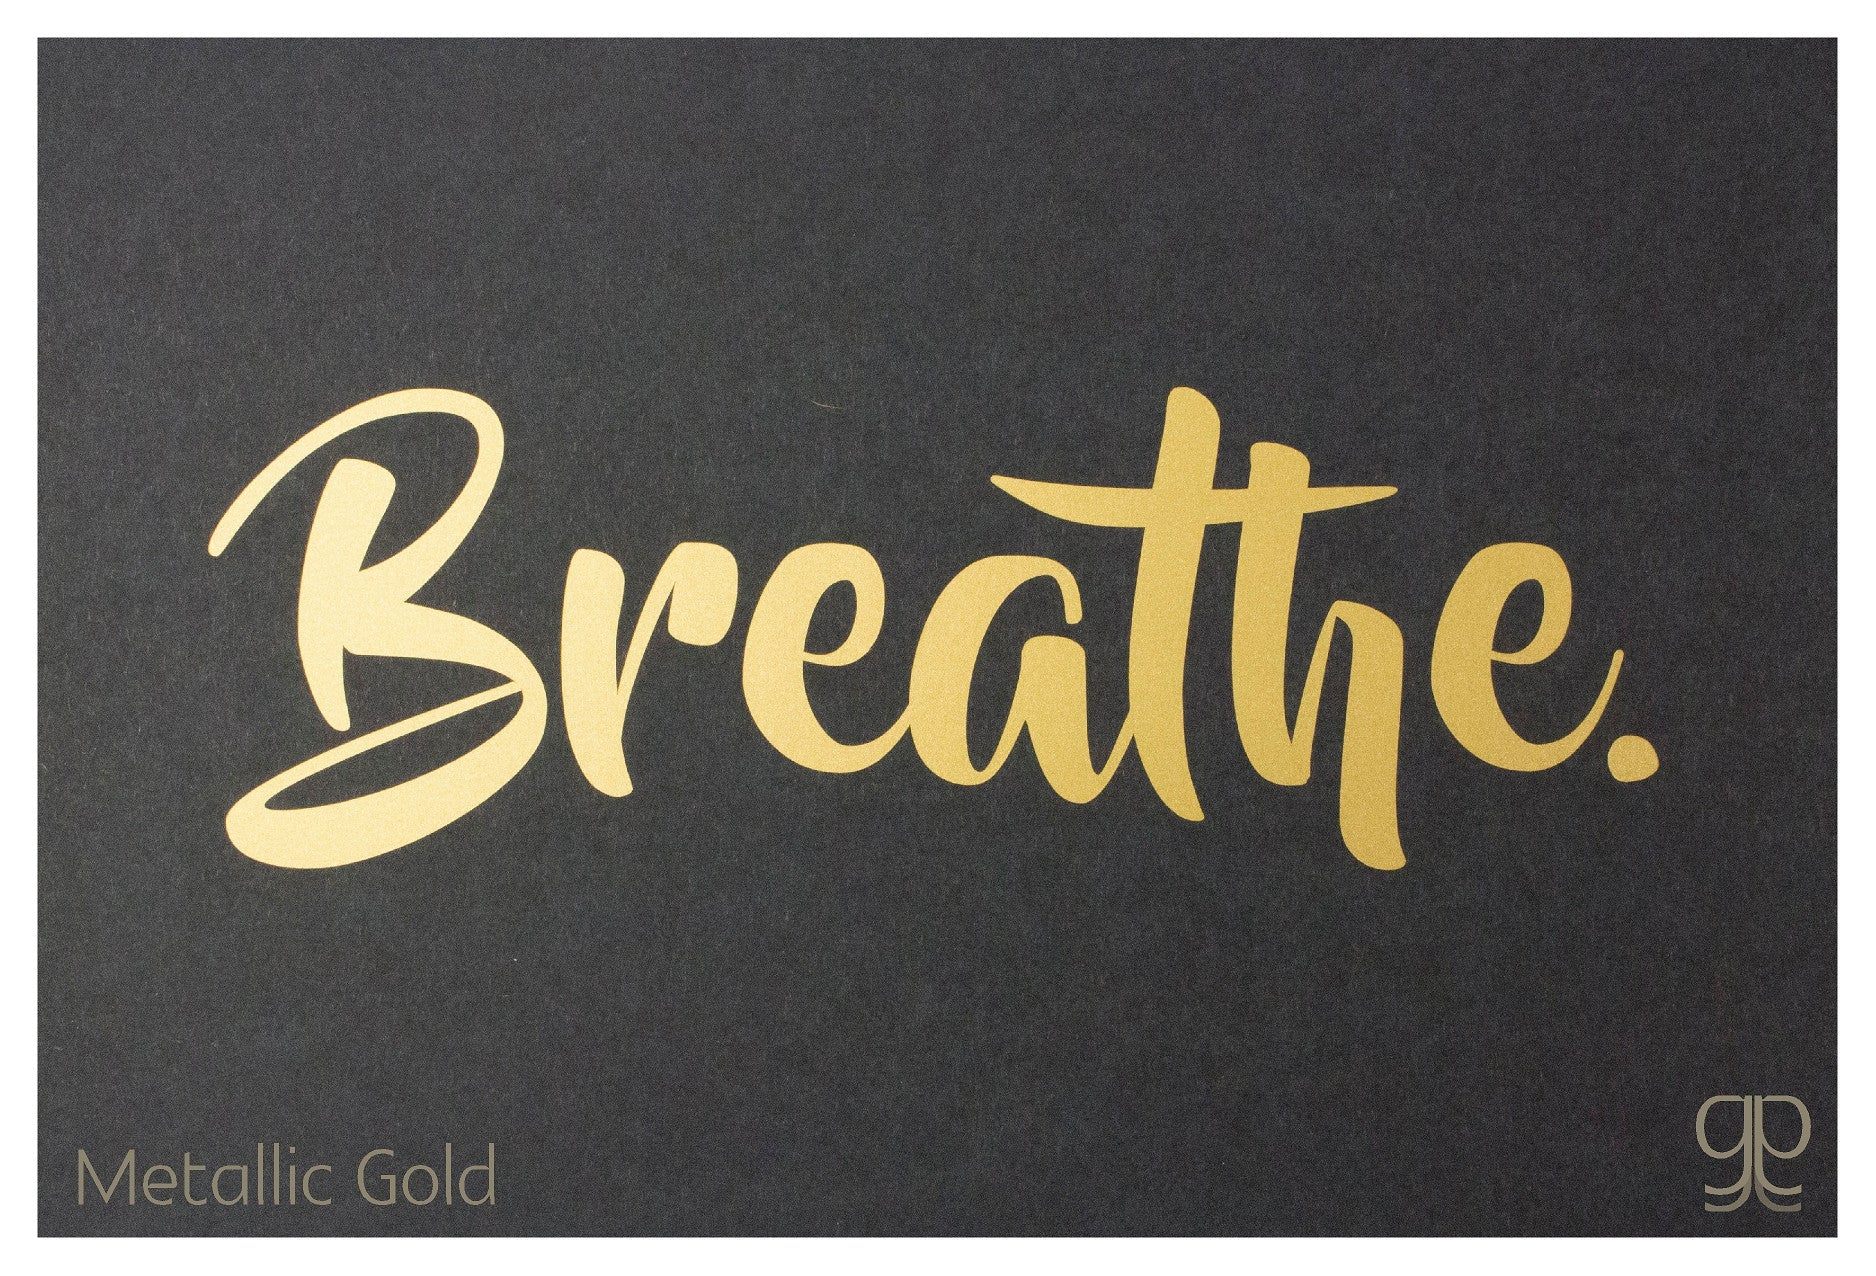 Large Decal - 'Breathe'